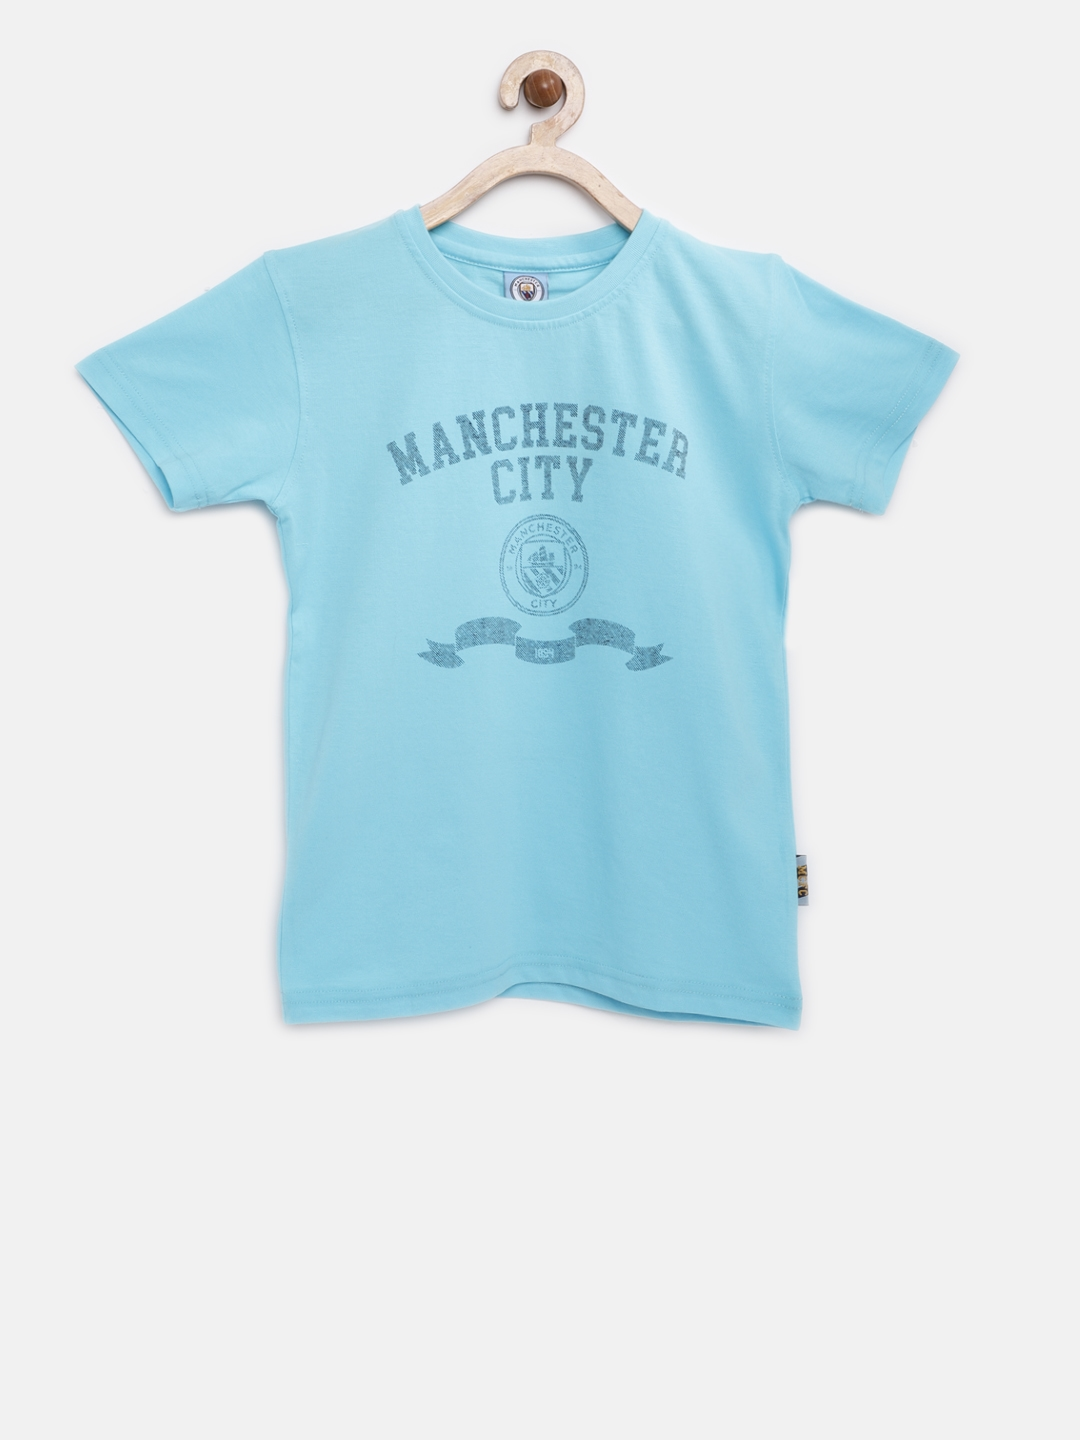 Buy Manchester City FC Boys Blue Printed Round Neck T Shirt ... 05d44f6210a4